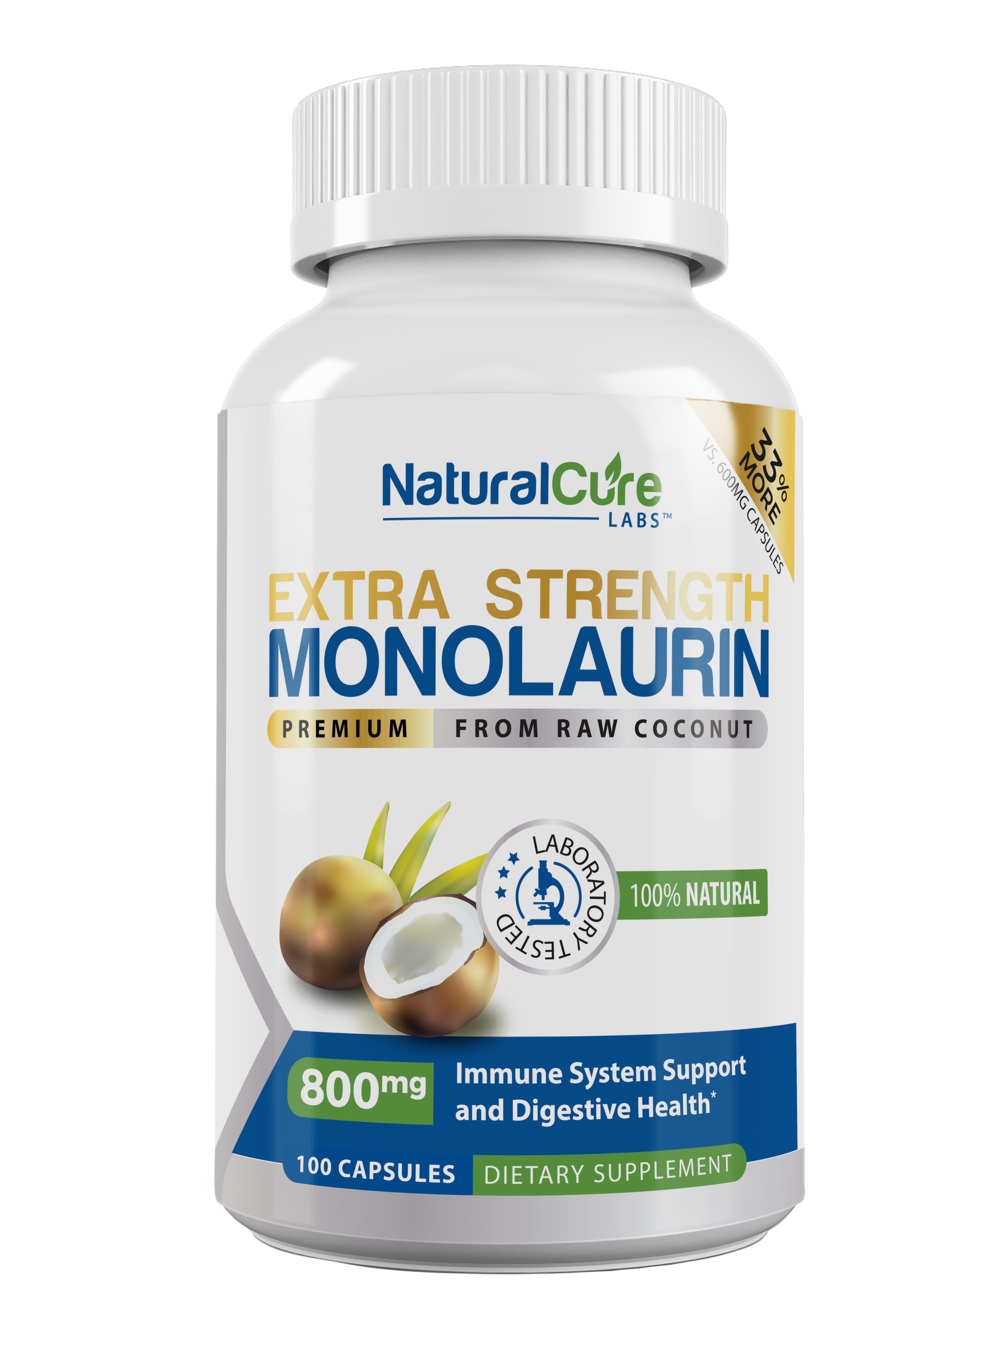 Monolaurin Extra Strength